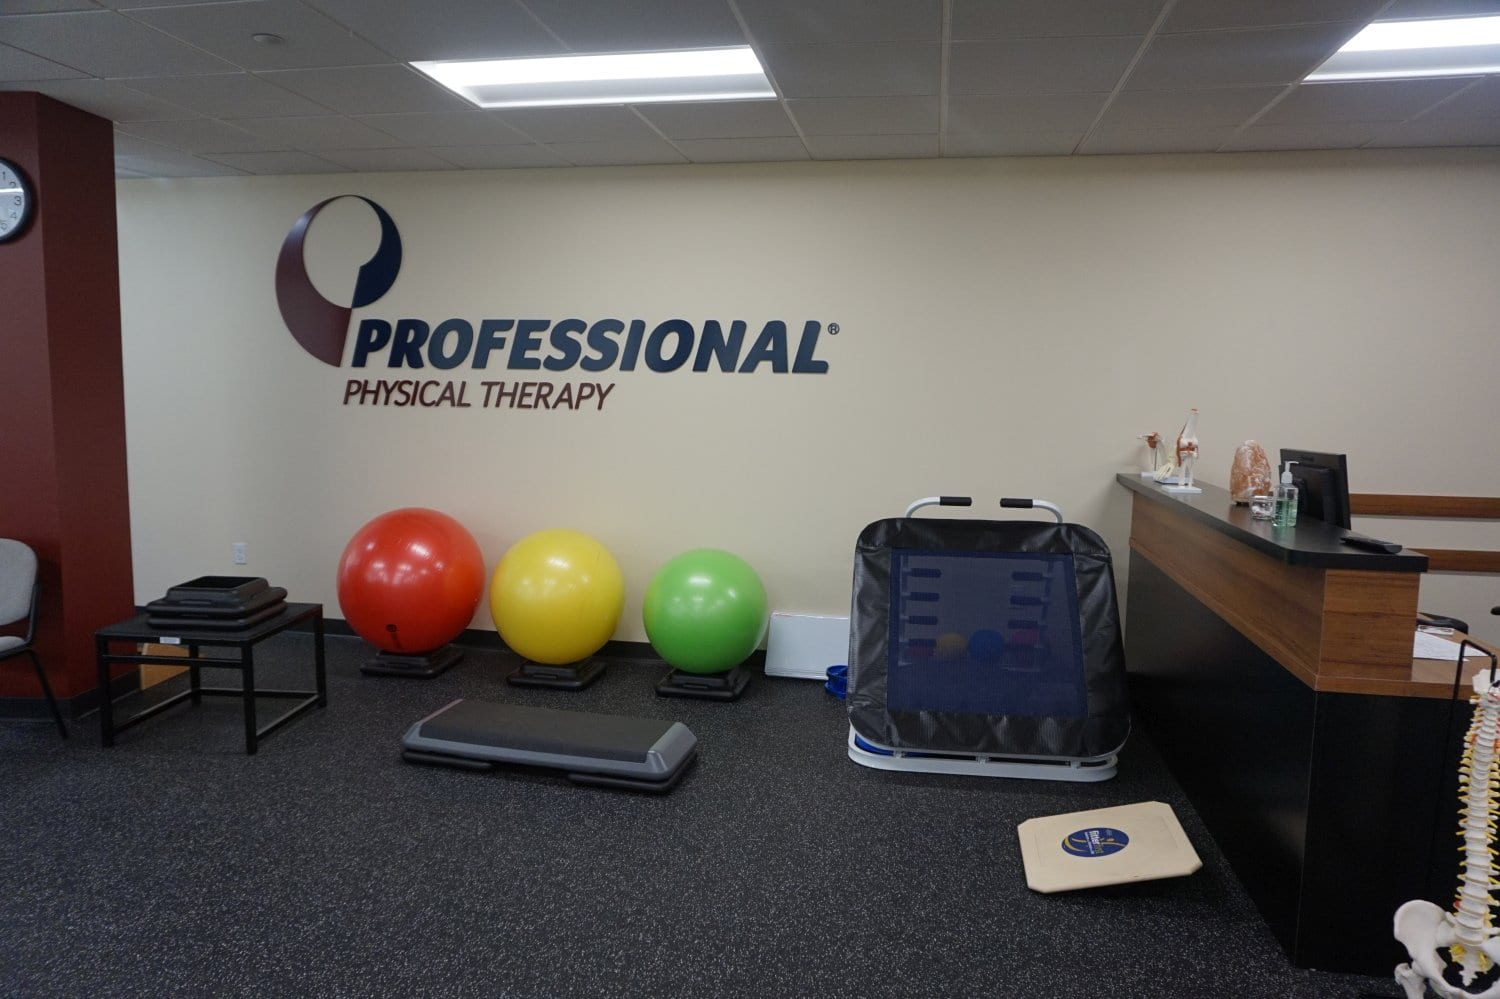 Here is an image of the interior of our physical therapy clinic in Stamford, Connecticut.